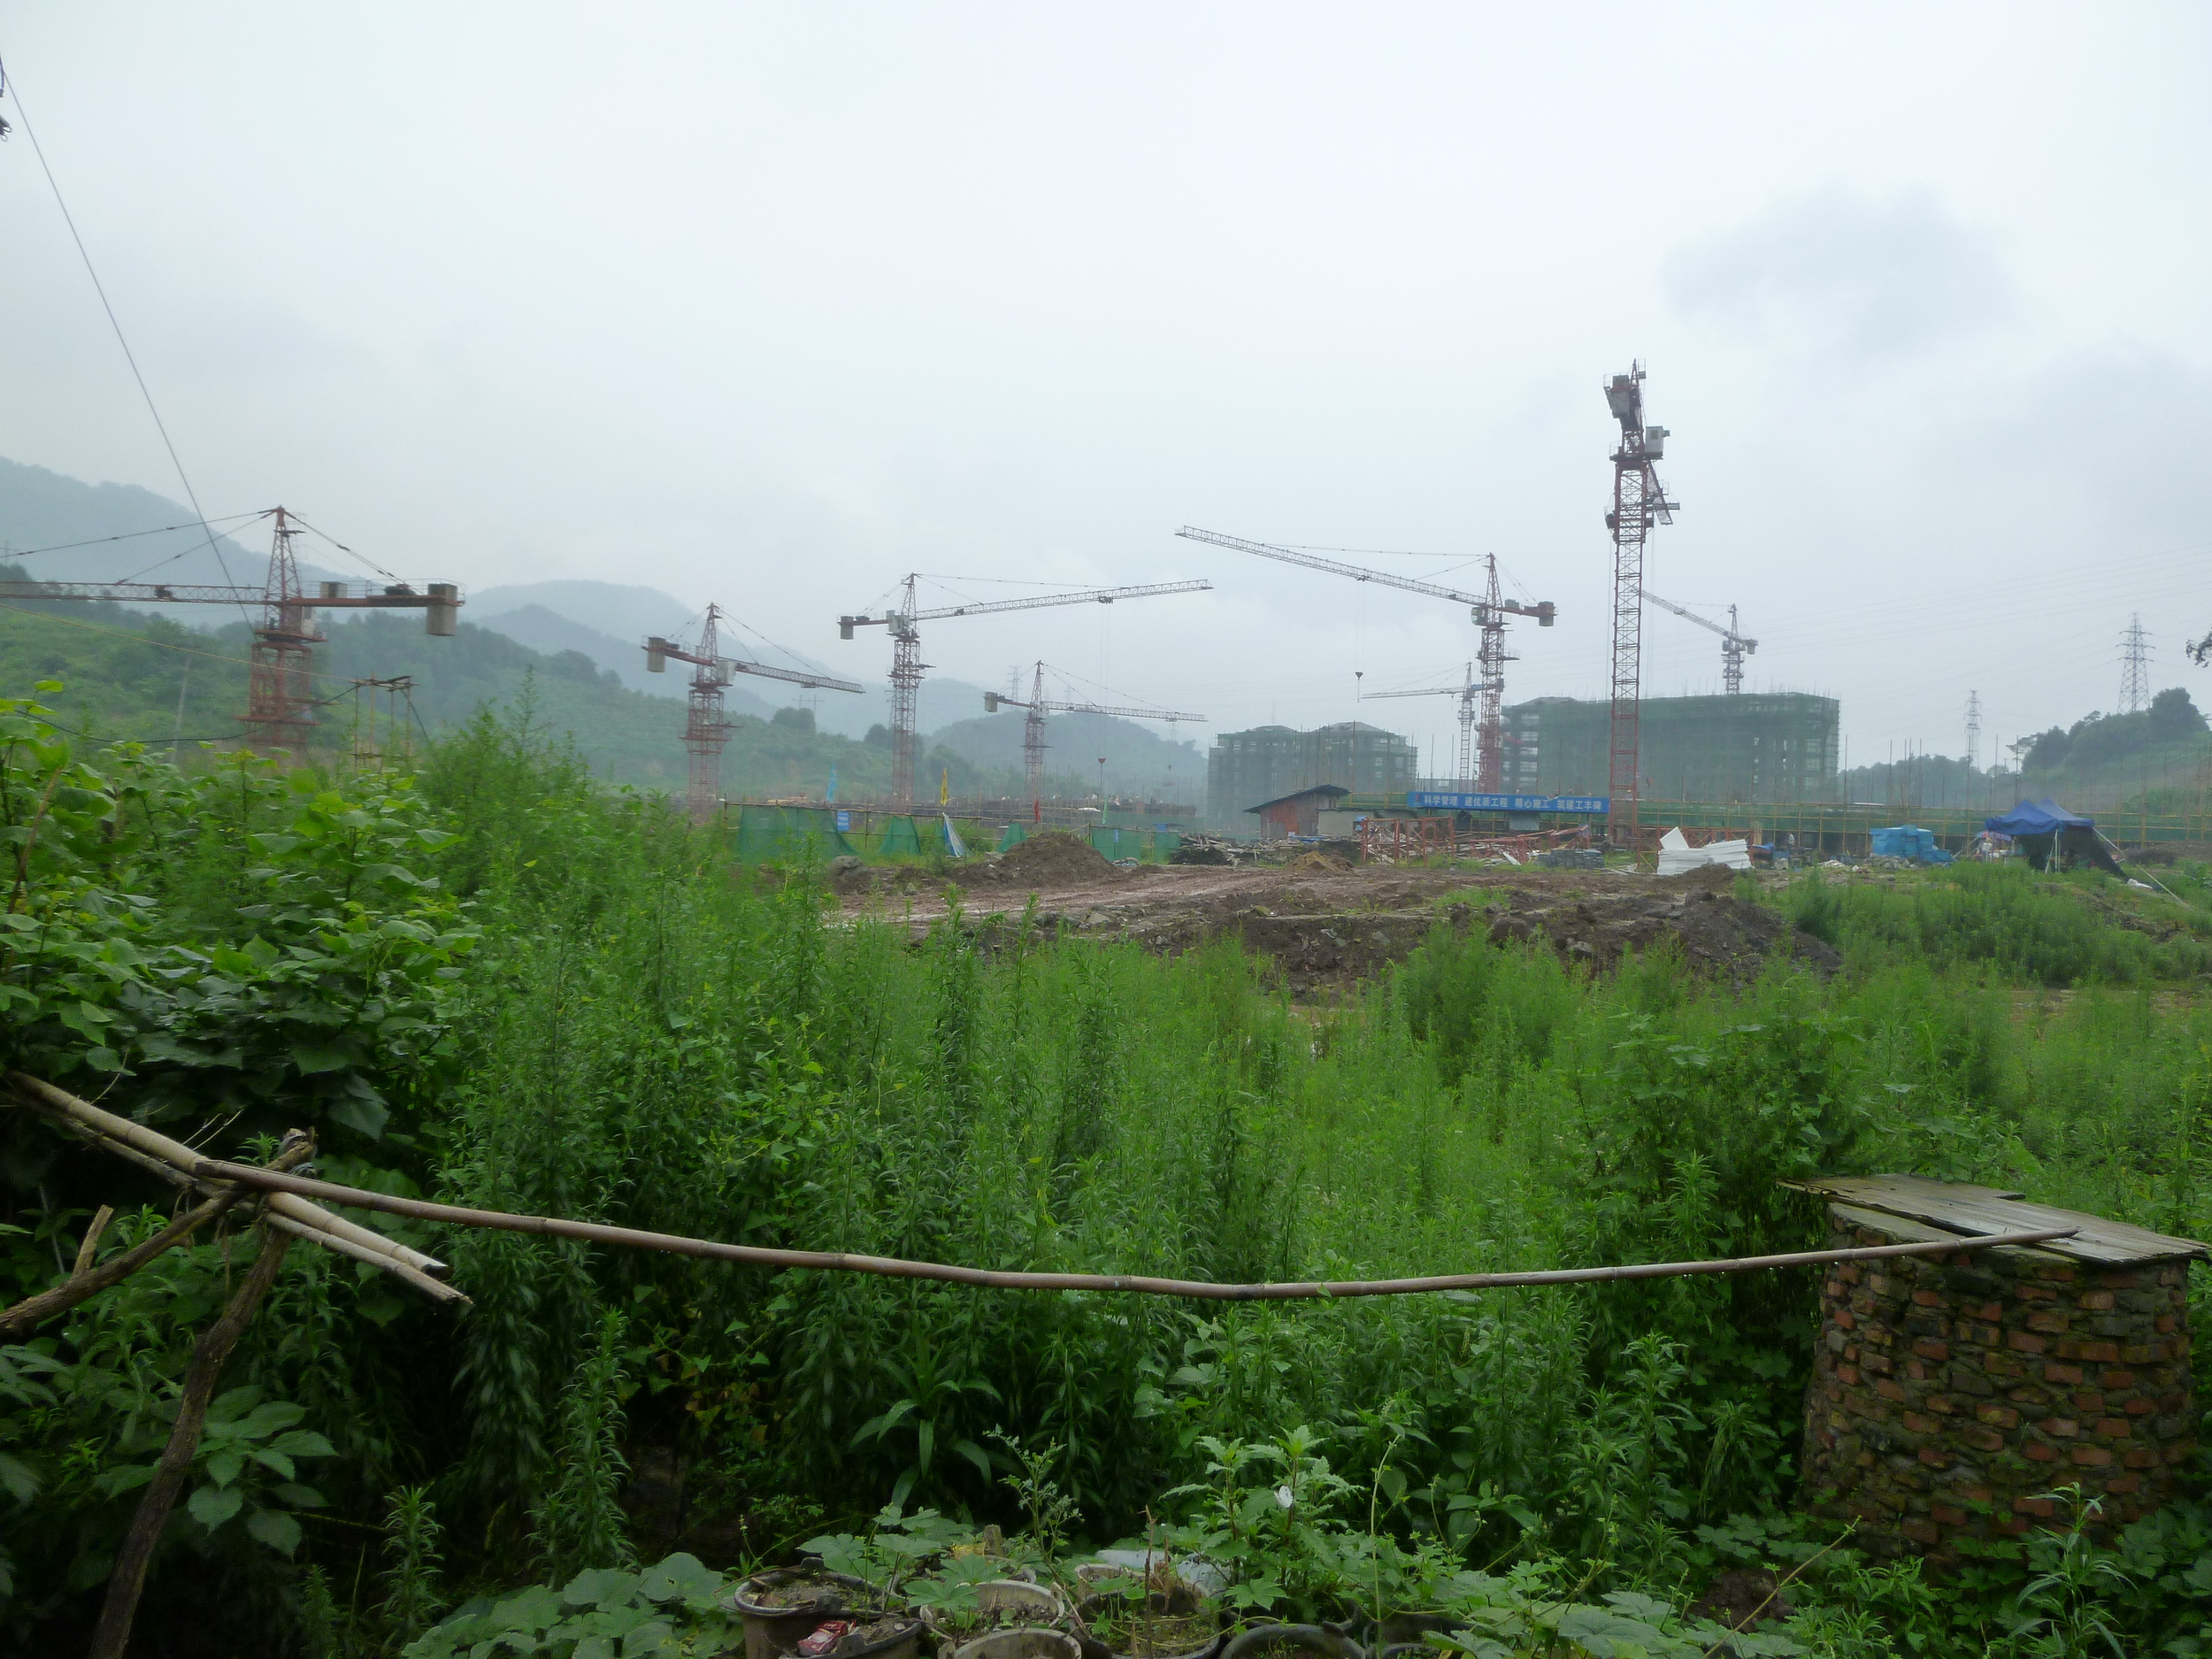 Hailong Village in Chongqing. Will grassroots village development be supported under China's urbanization plan?